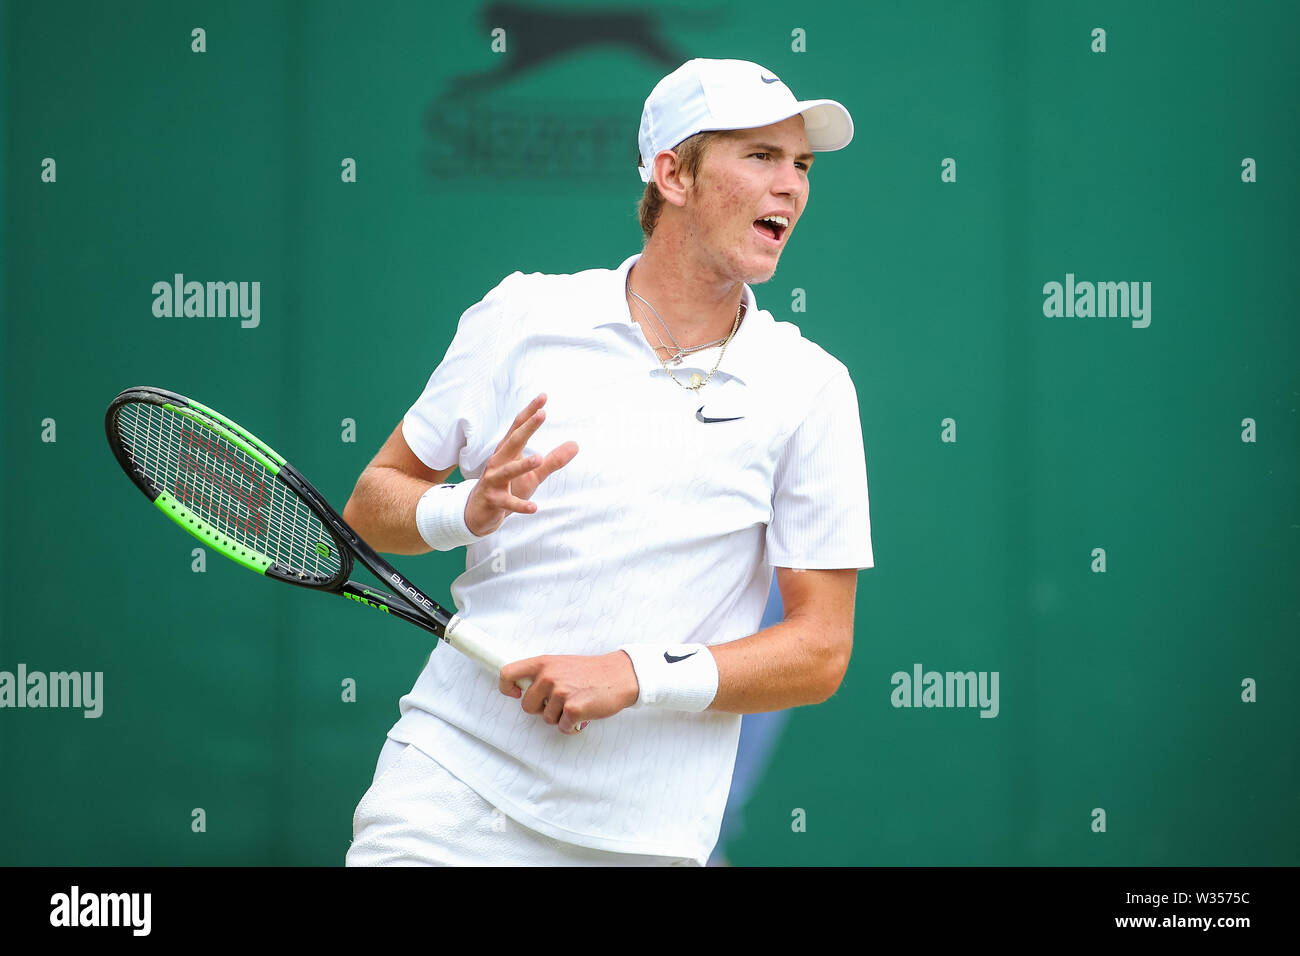 Wimbledon, London, UK. 12th July 2019. Wimbledon, London, UK. 12th July 2019.Martin Damm of the United States during the boy's singles semi-final match of the Wimbledon Lawn Tennis Championships against Shintaro Mochizuki of Japan at the All England Lawn Tennis and Croquet Club in London, England on July 12, 2019. Credit: AFLO/Alamy Live News Stock Photo